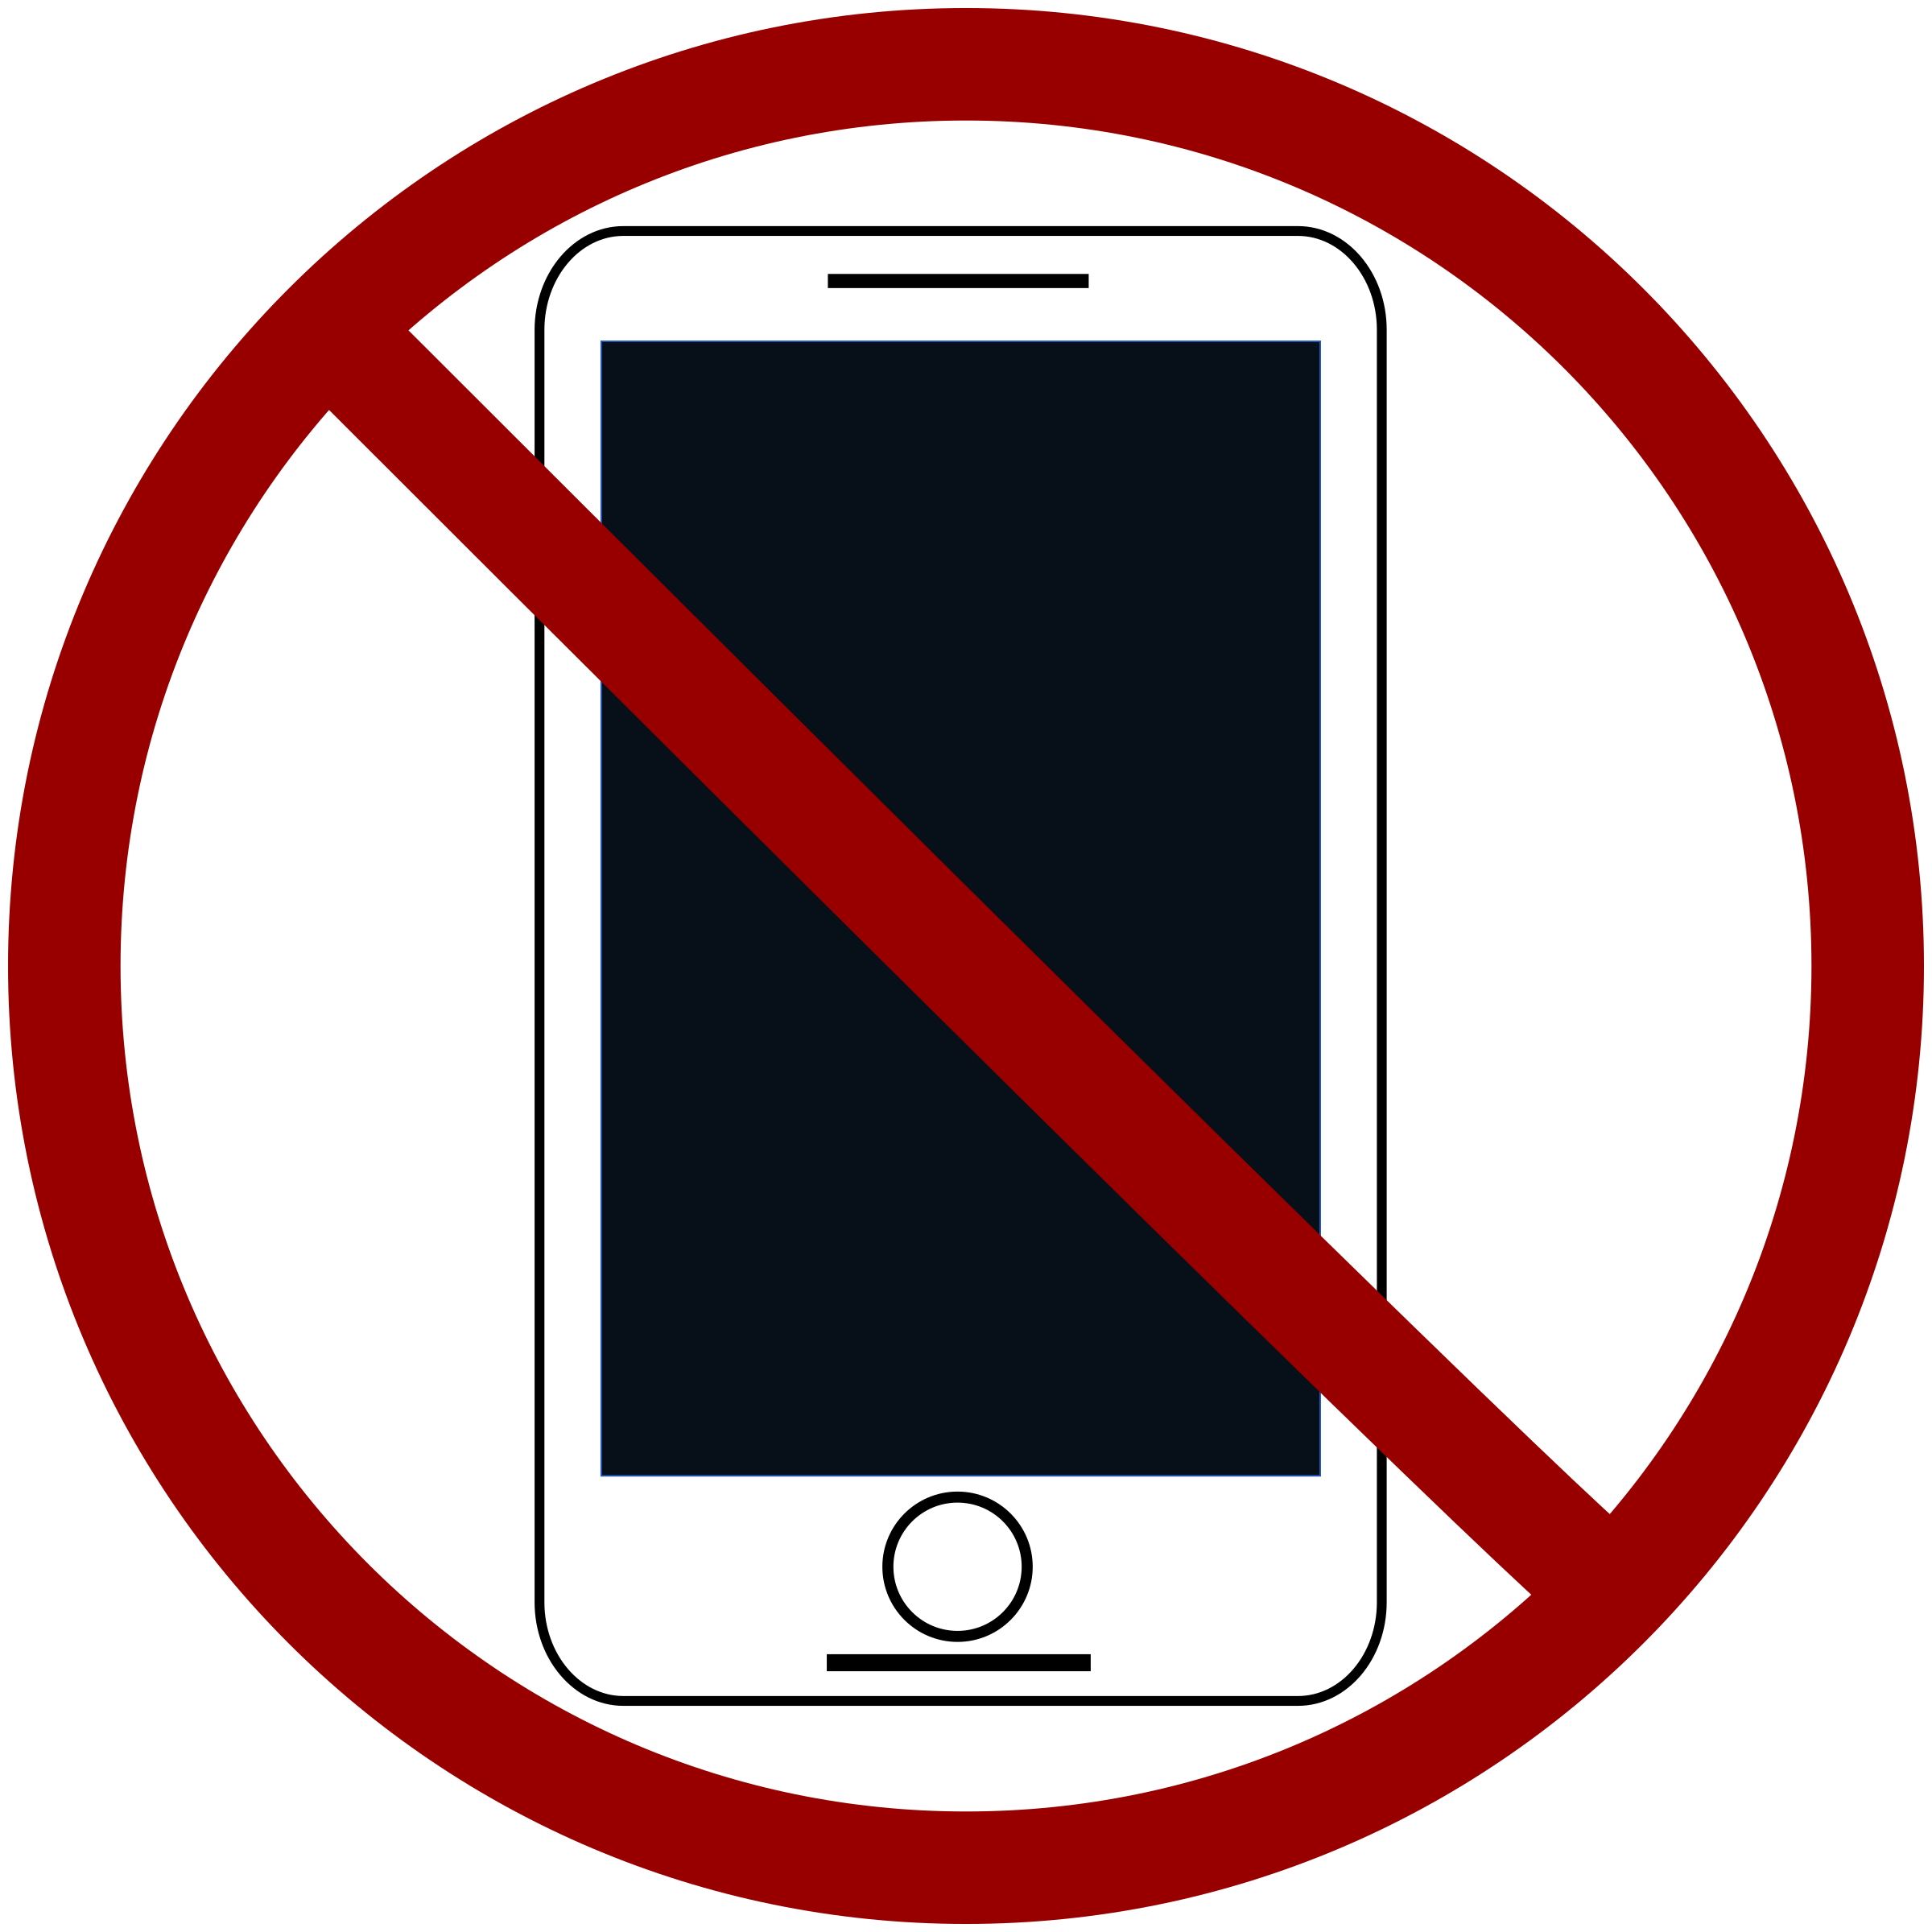 No Cell Phones Free Clipart Download - No Smartphone Icon by schoolfreeware